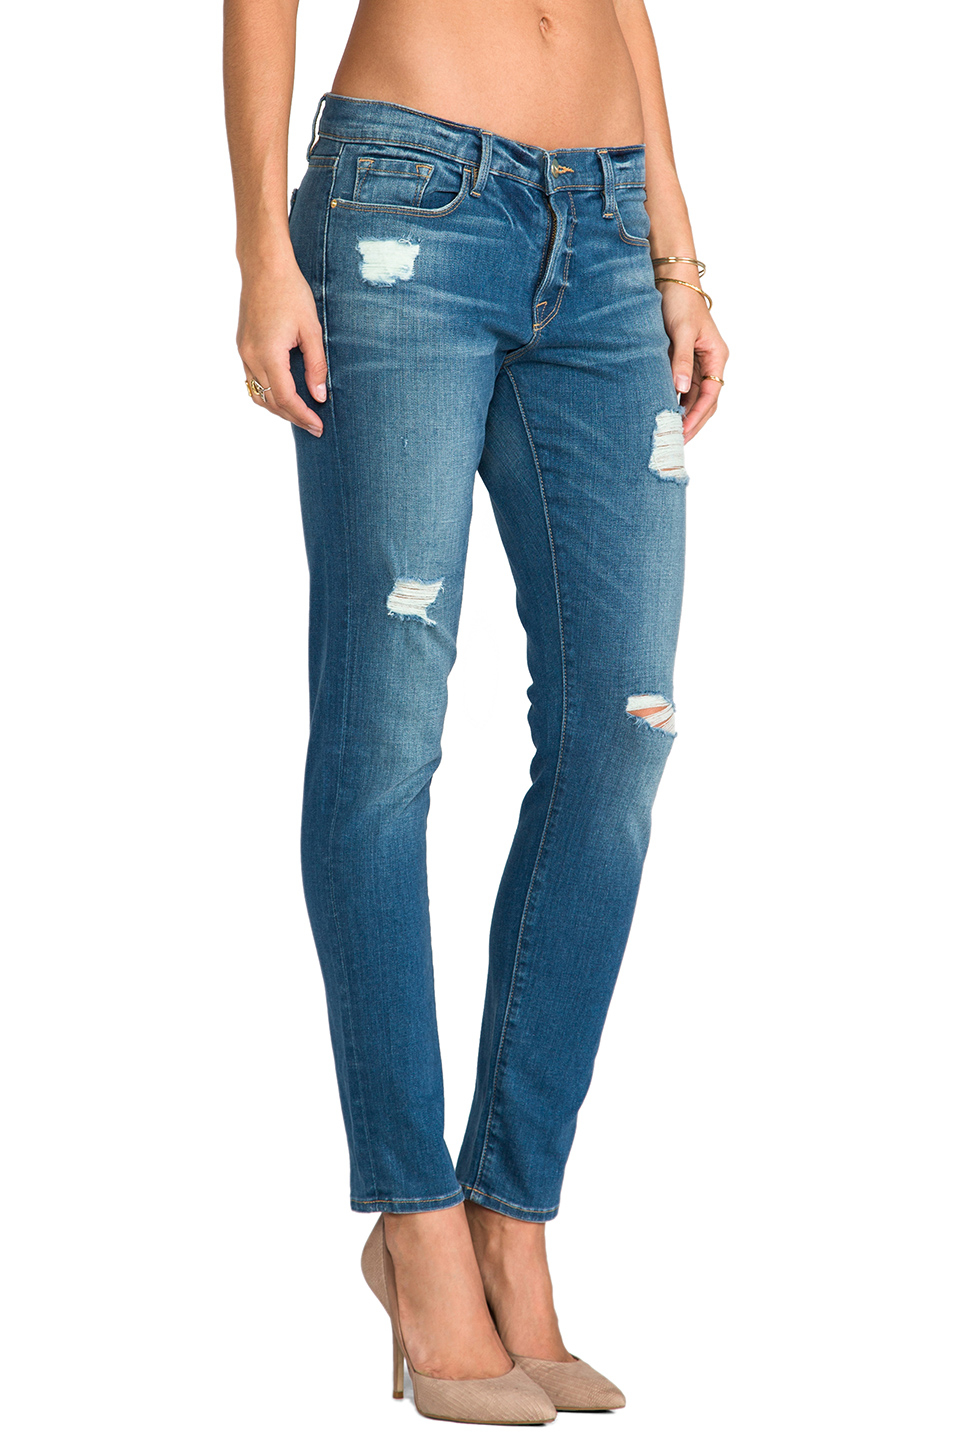 Lyst - Frame Le Garcon Distressed Jean in Blue